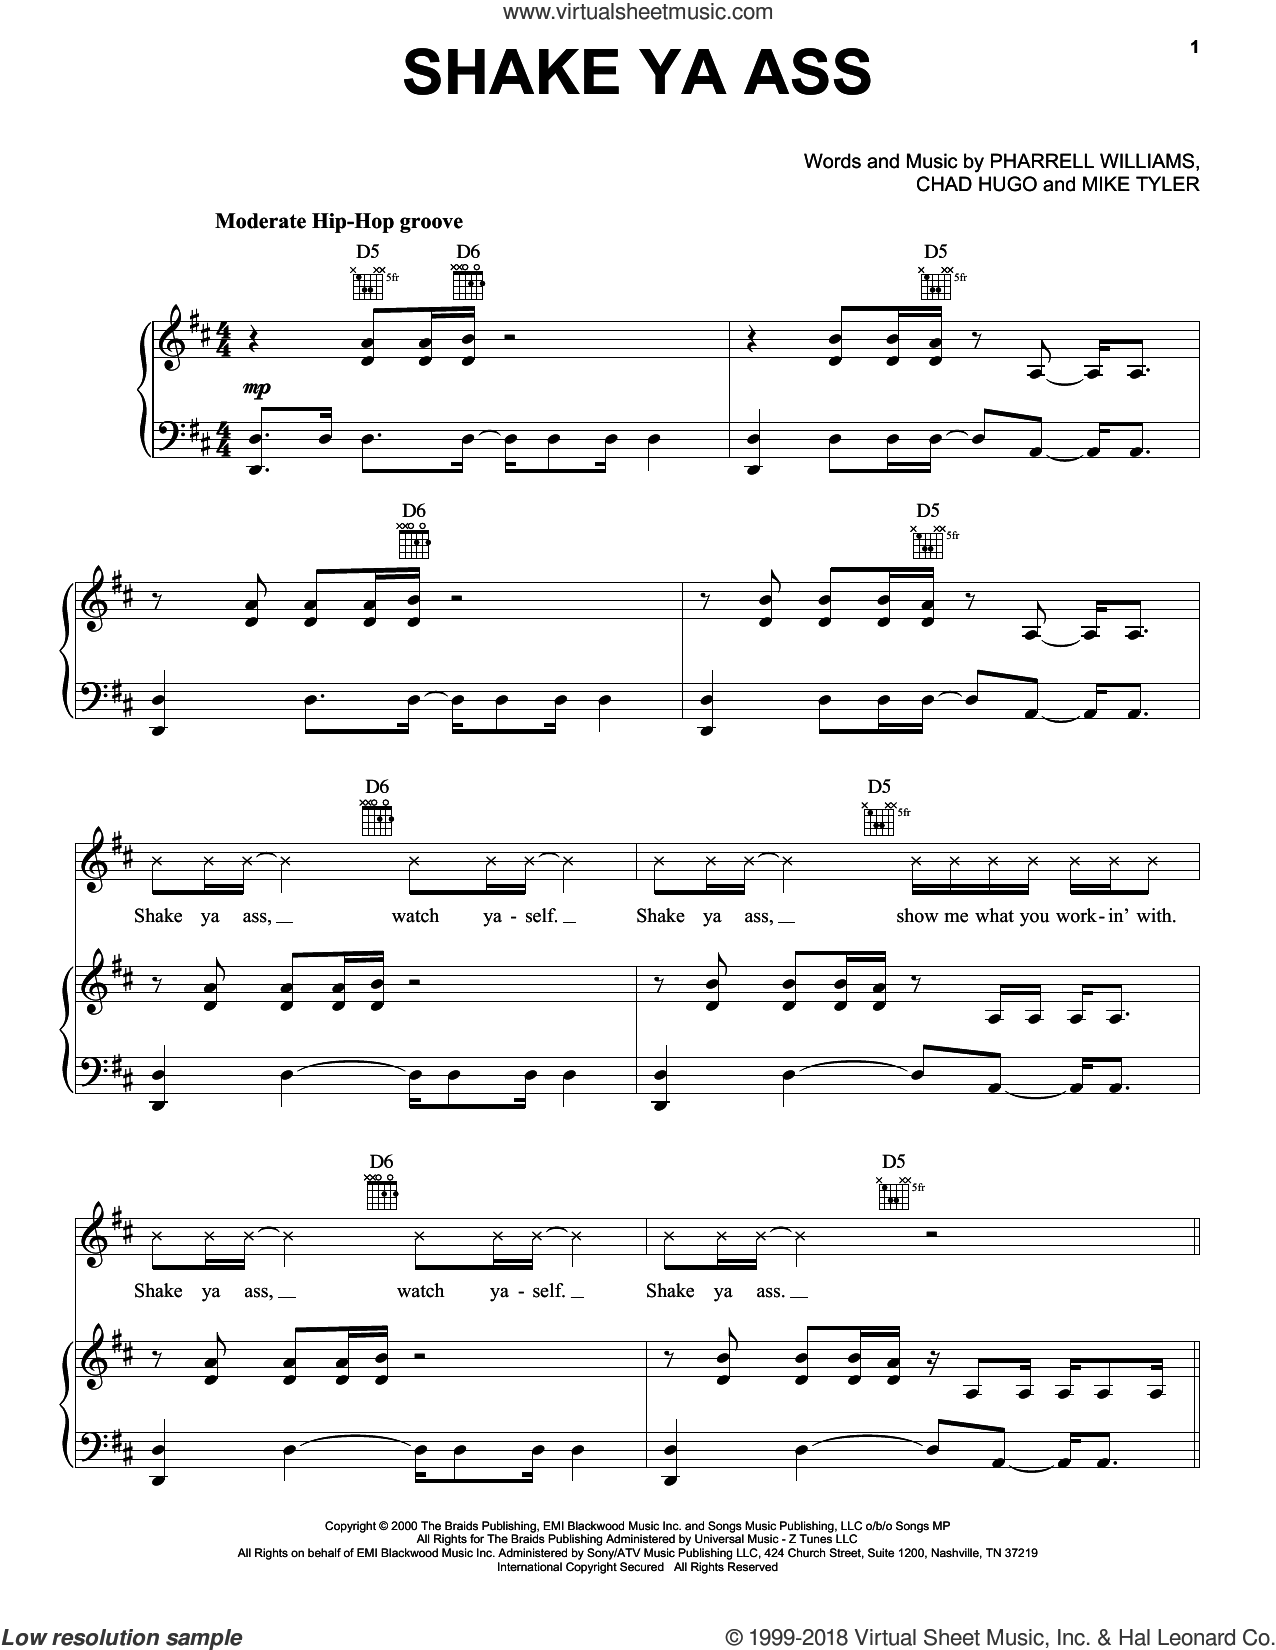 Shake Ya Ass sheet music for voice, piano or guitar by Mystikal, Chad Hugo, Mike Tyler and Pharrell Williams, intermediate skill level